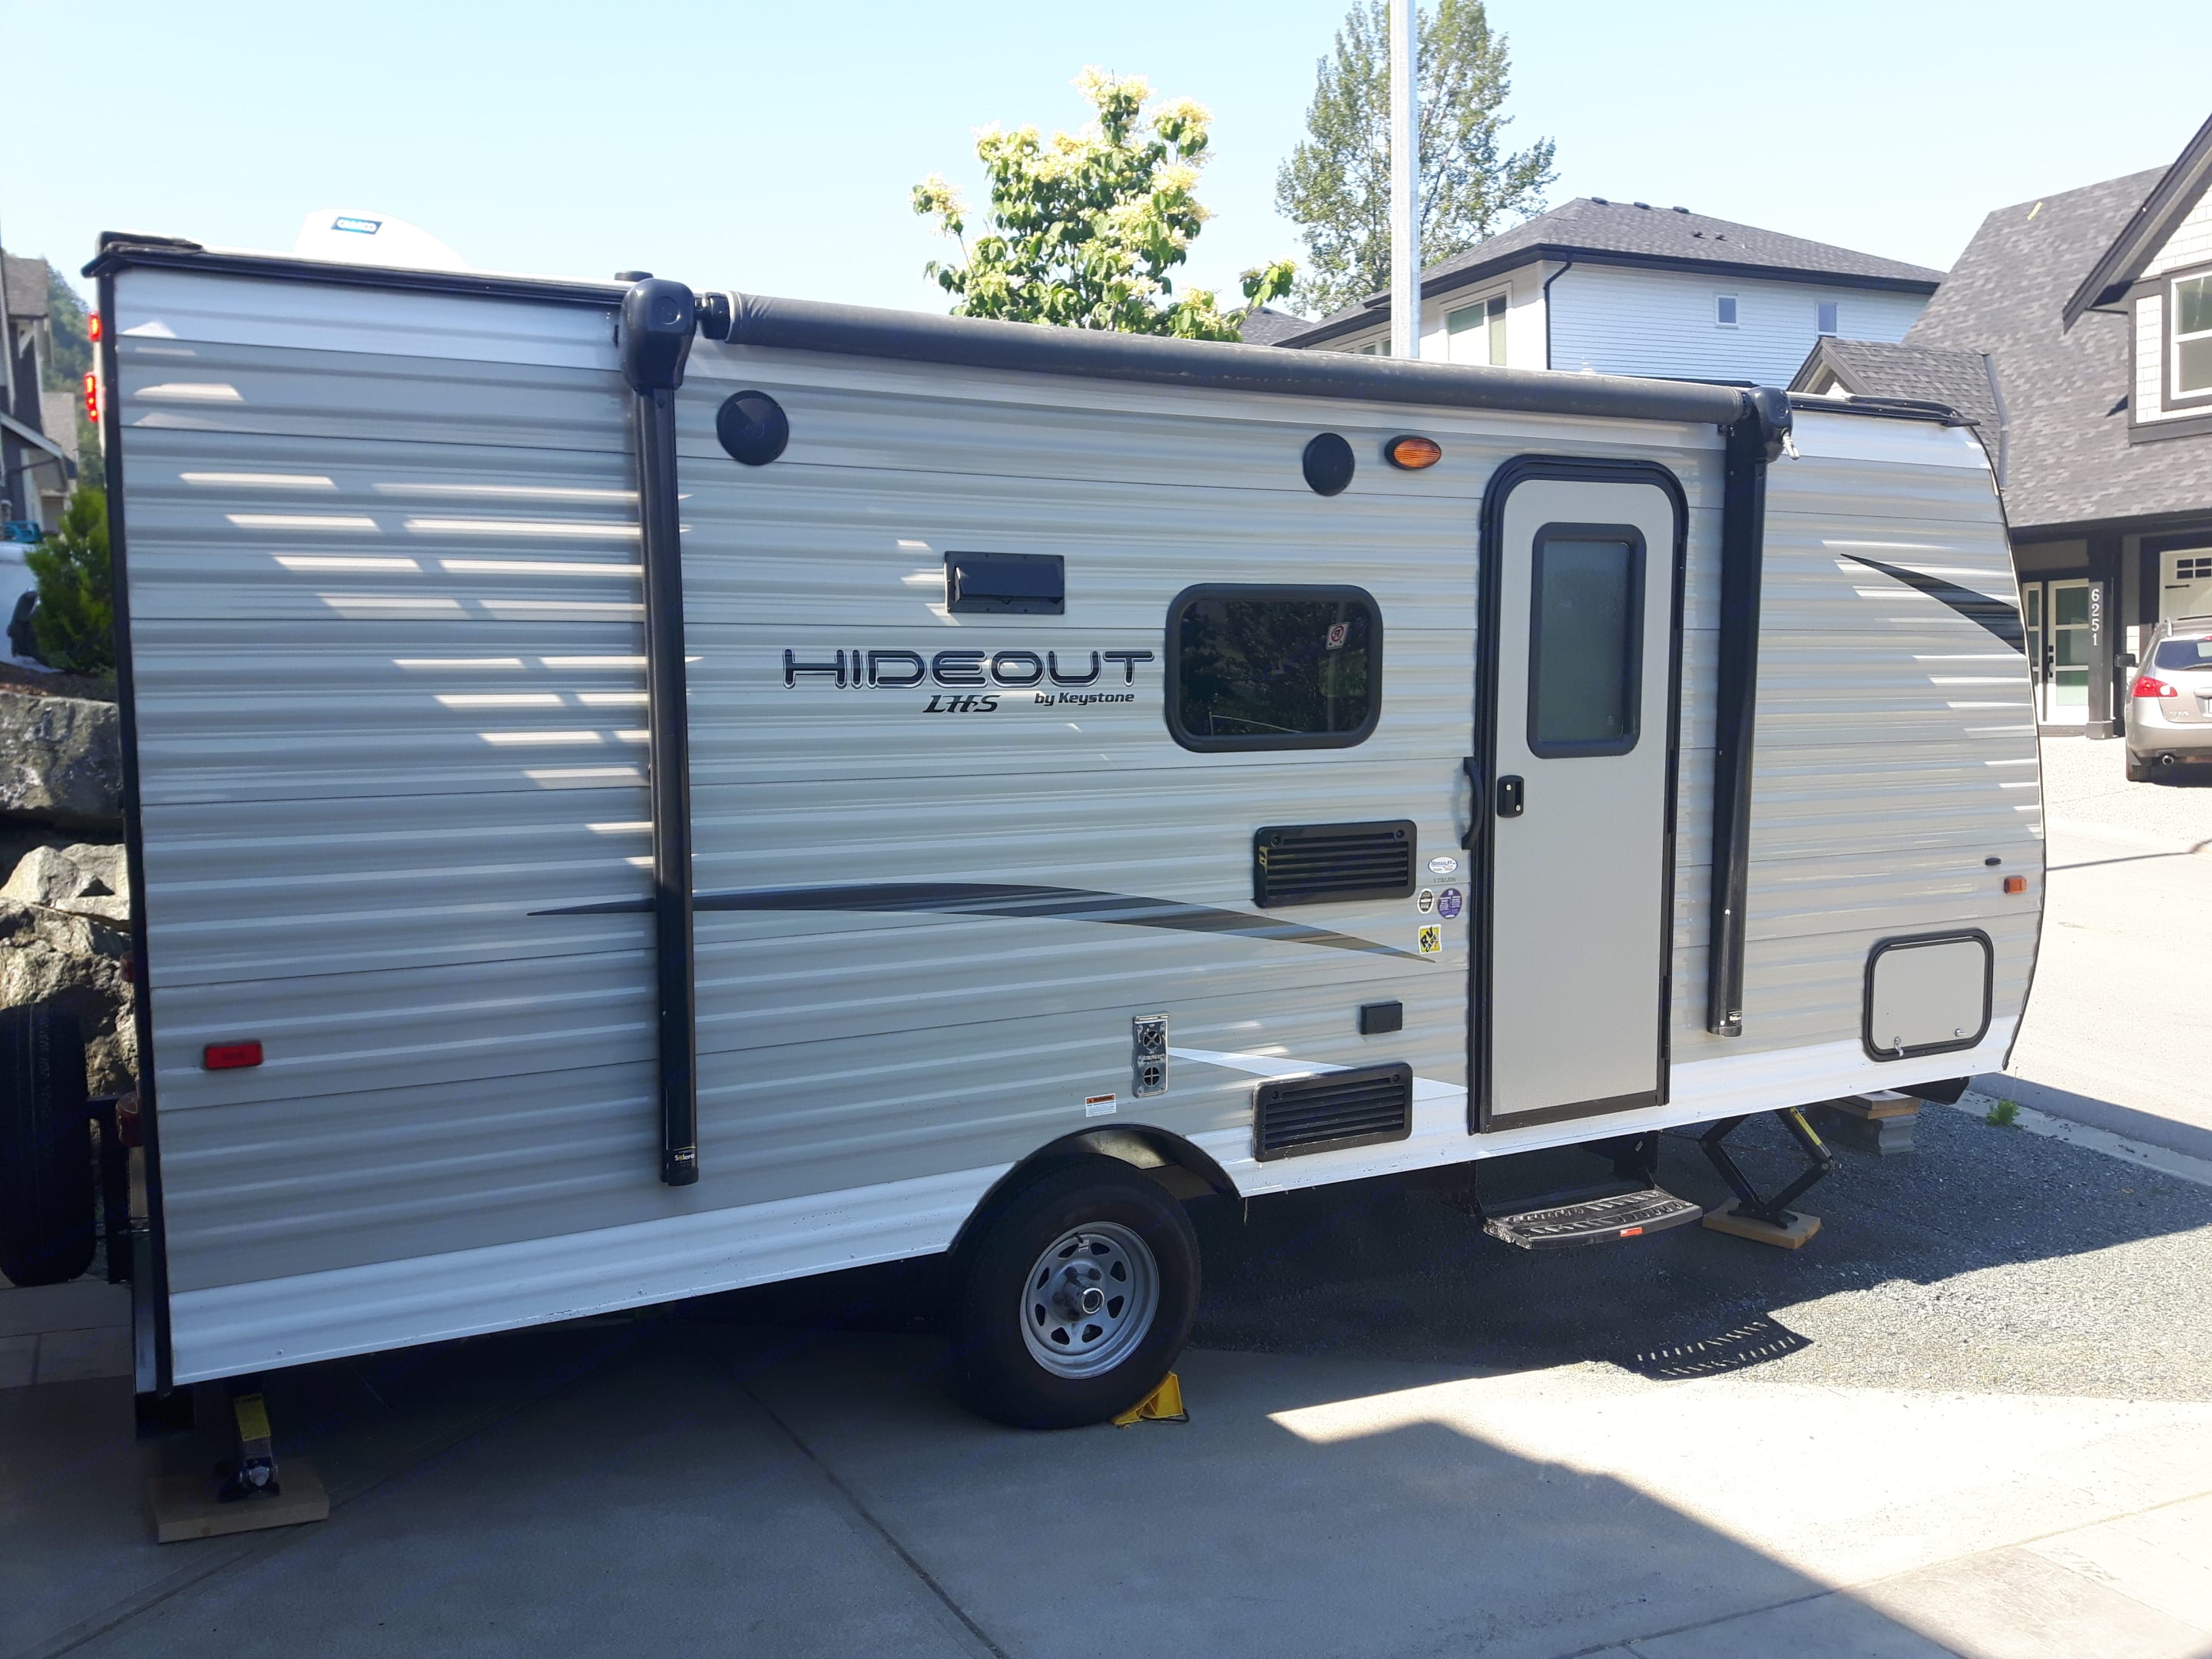 Exterior of our trailer, including the manual awning.. Keystone Hideout 2018